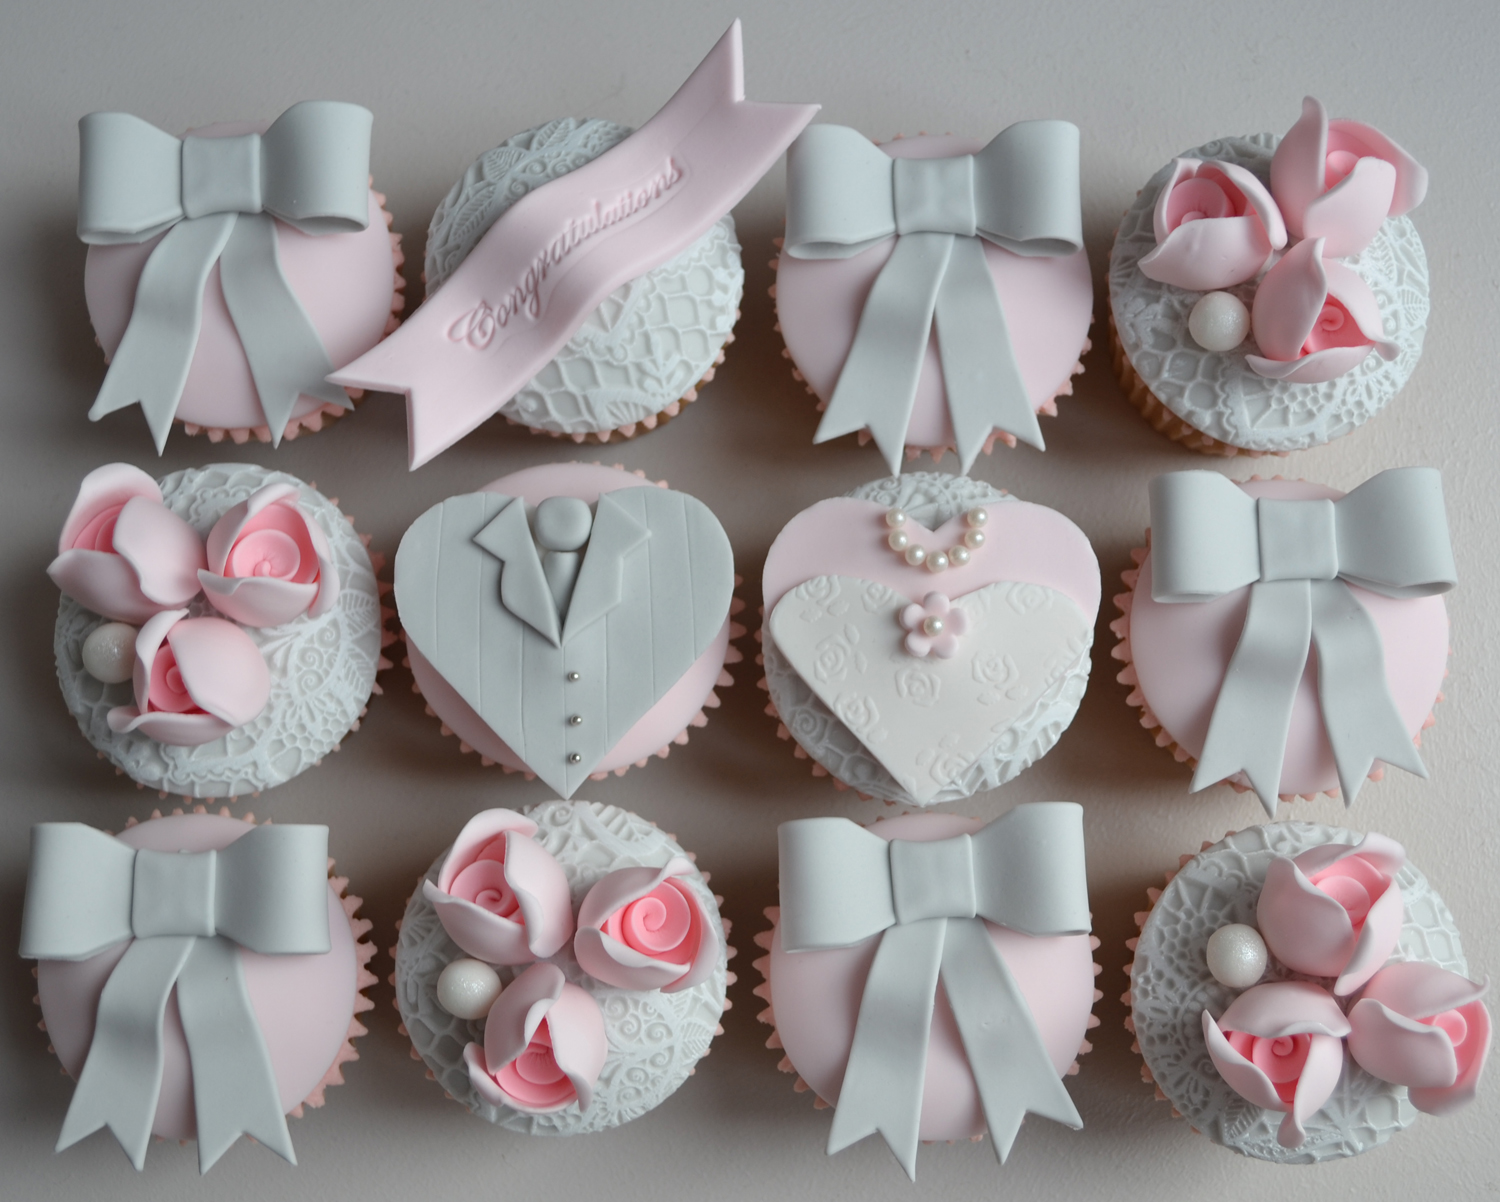 Little Paper Cakes: Vintage Wedding Bride And Groom Cupcakes